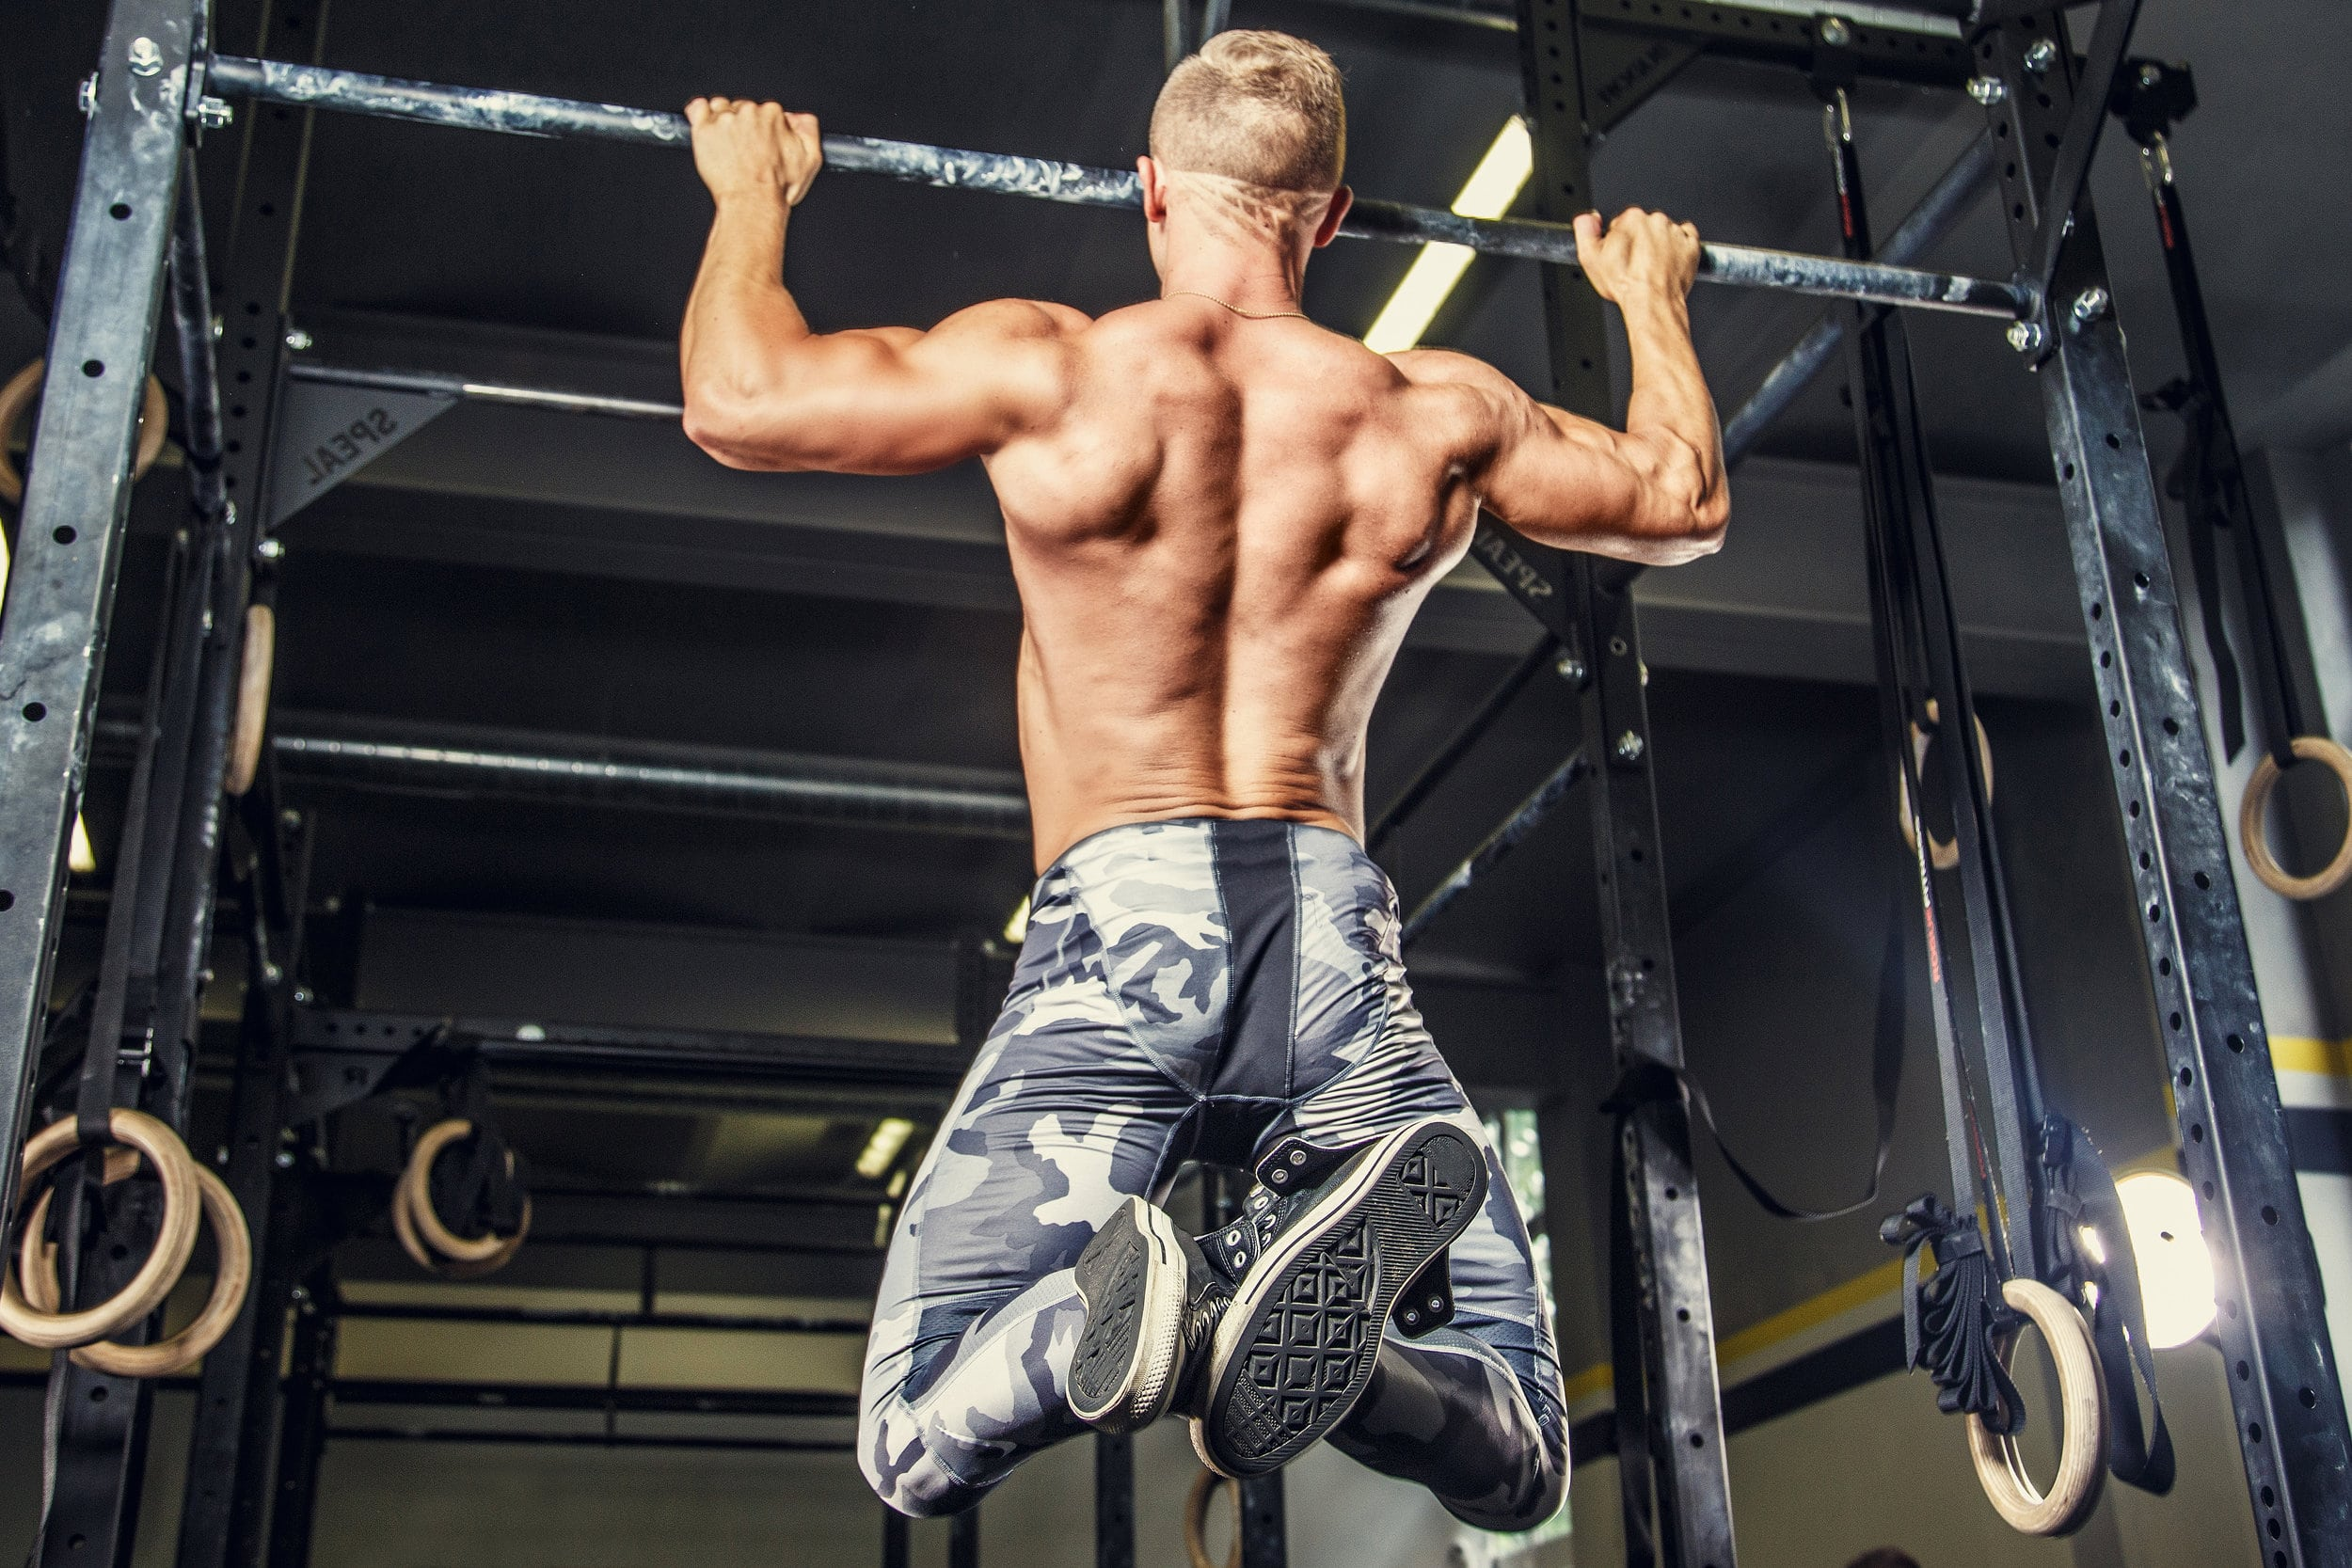 How to perform pull-ups with a wide grip on the crossbar?